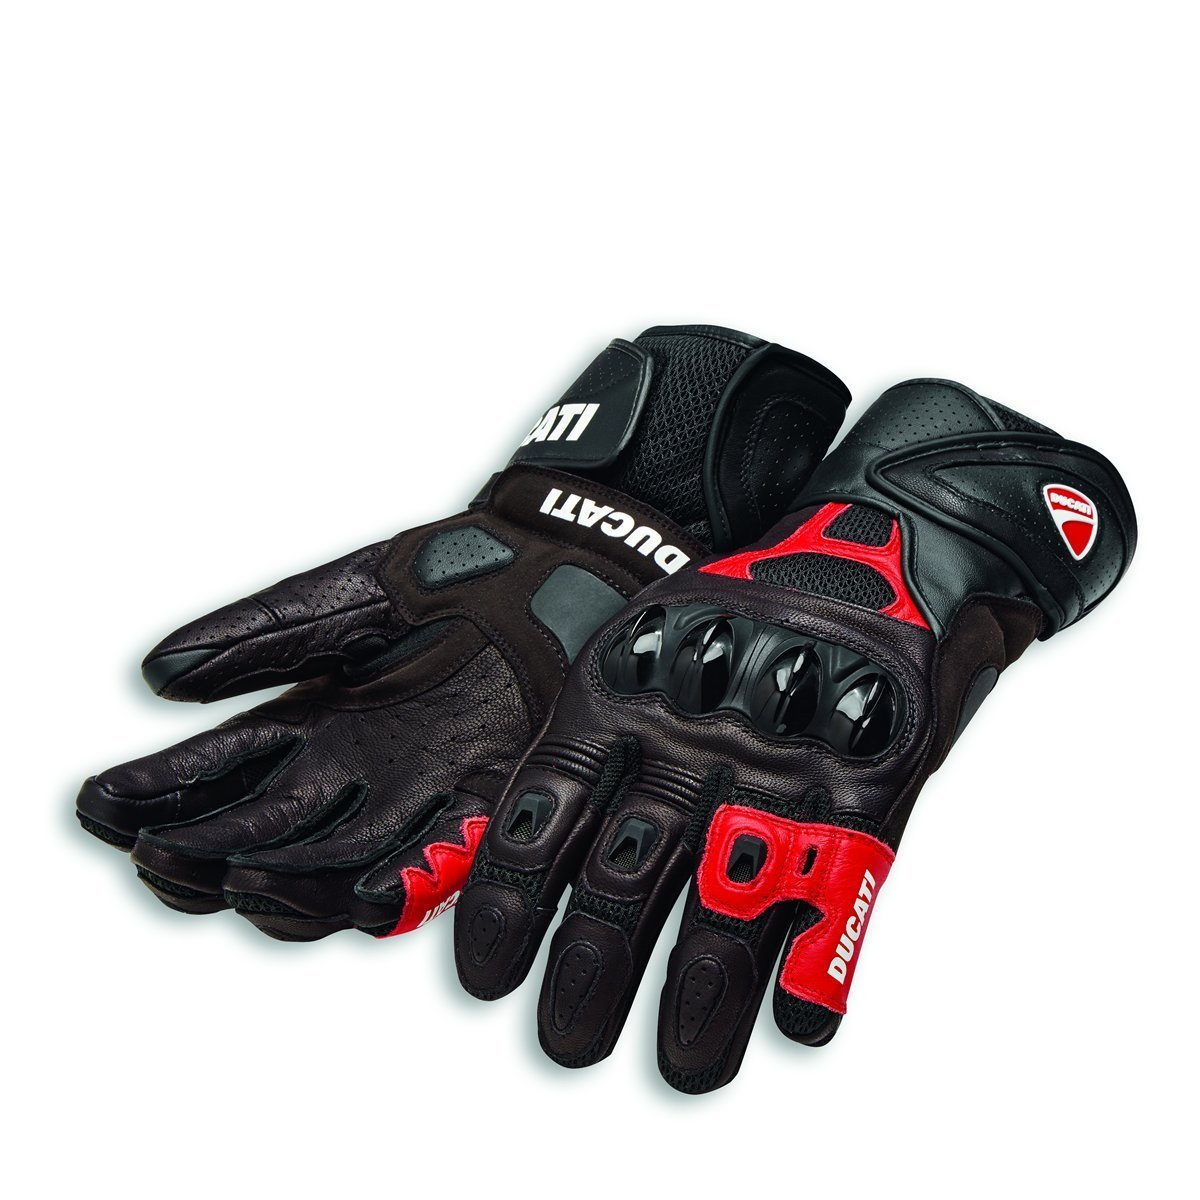 ducati speed air c1 gloves high road collection online store. Black Bedroom Furniture Sets. Home Design Ideas